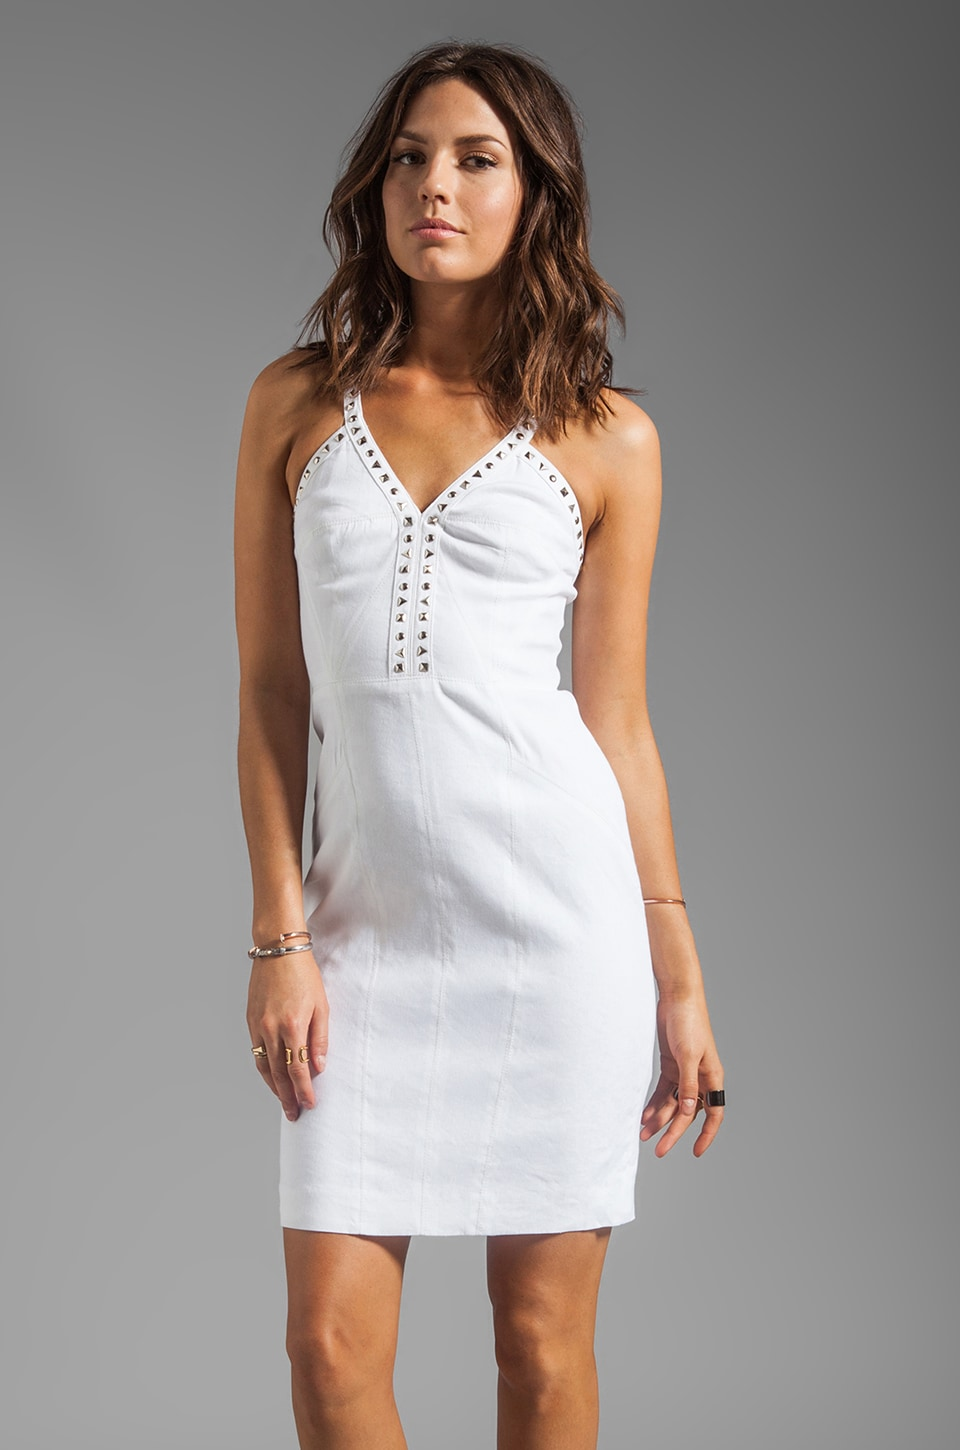 Rebecca Taylor Deep V Dress in White